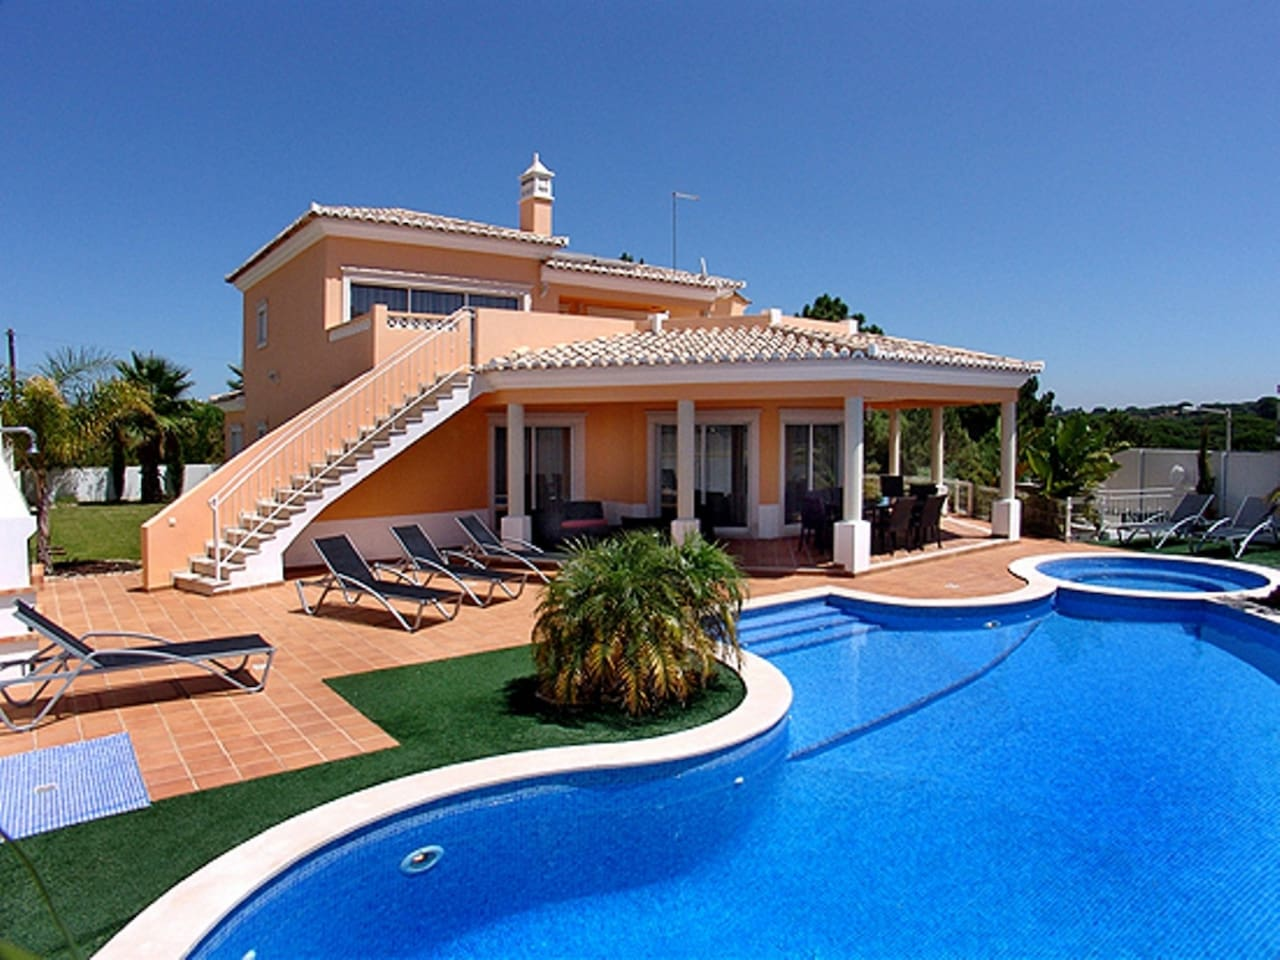 Private Villas In Portugal villa duma with private pool and jacuzzi which can be heated